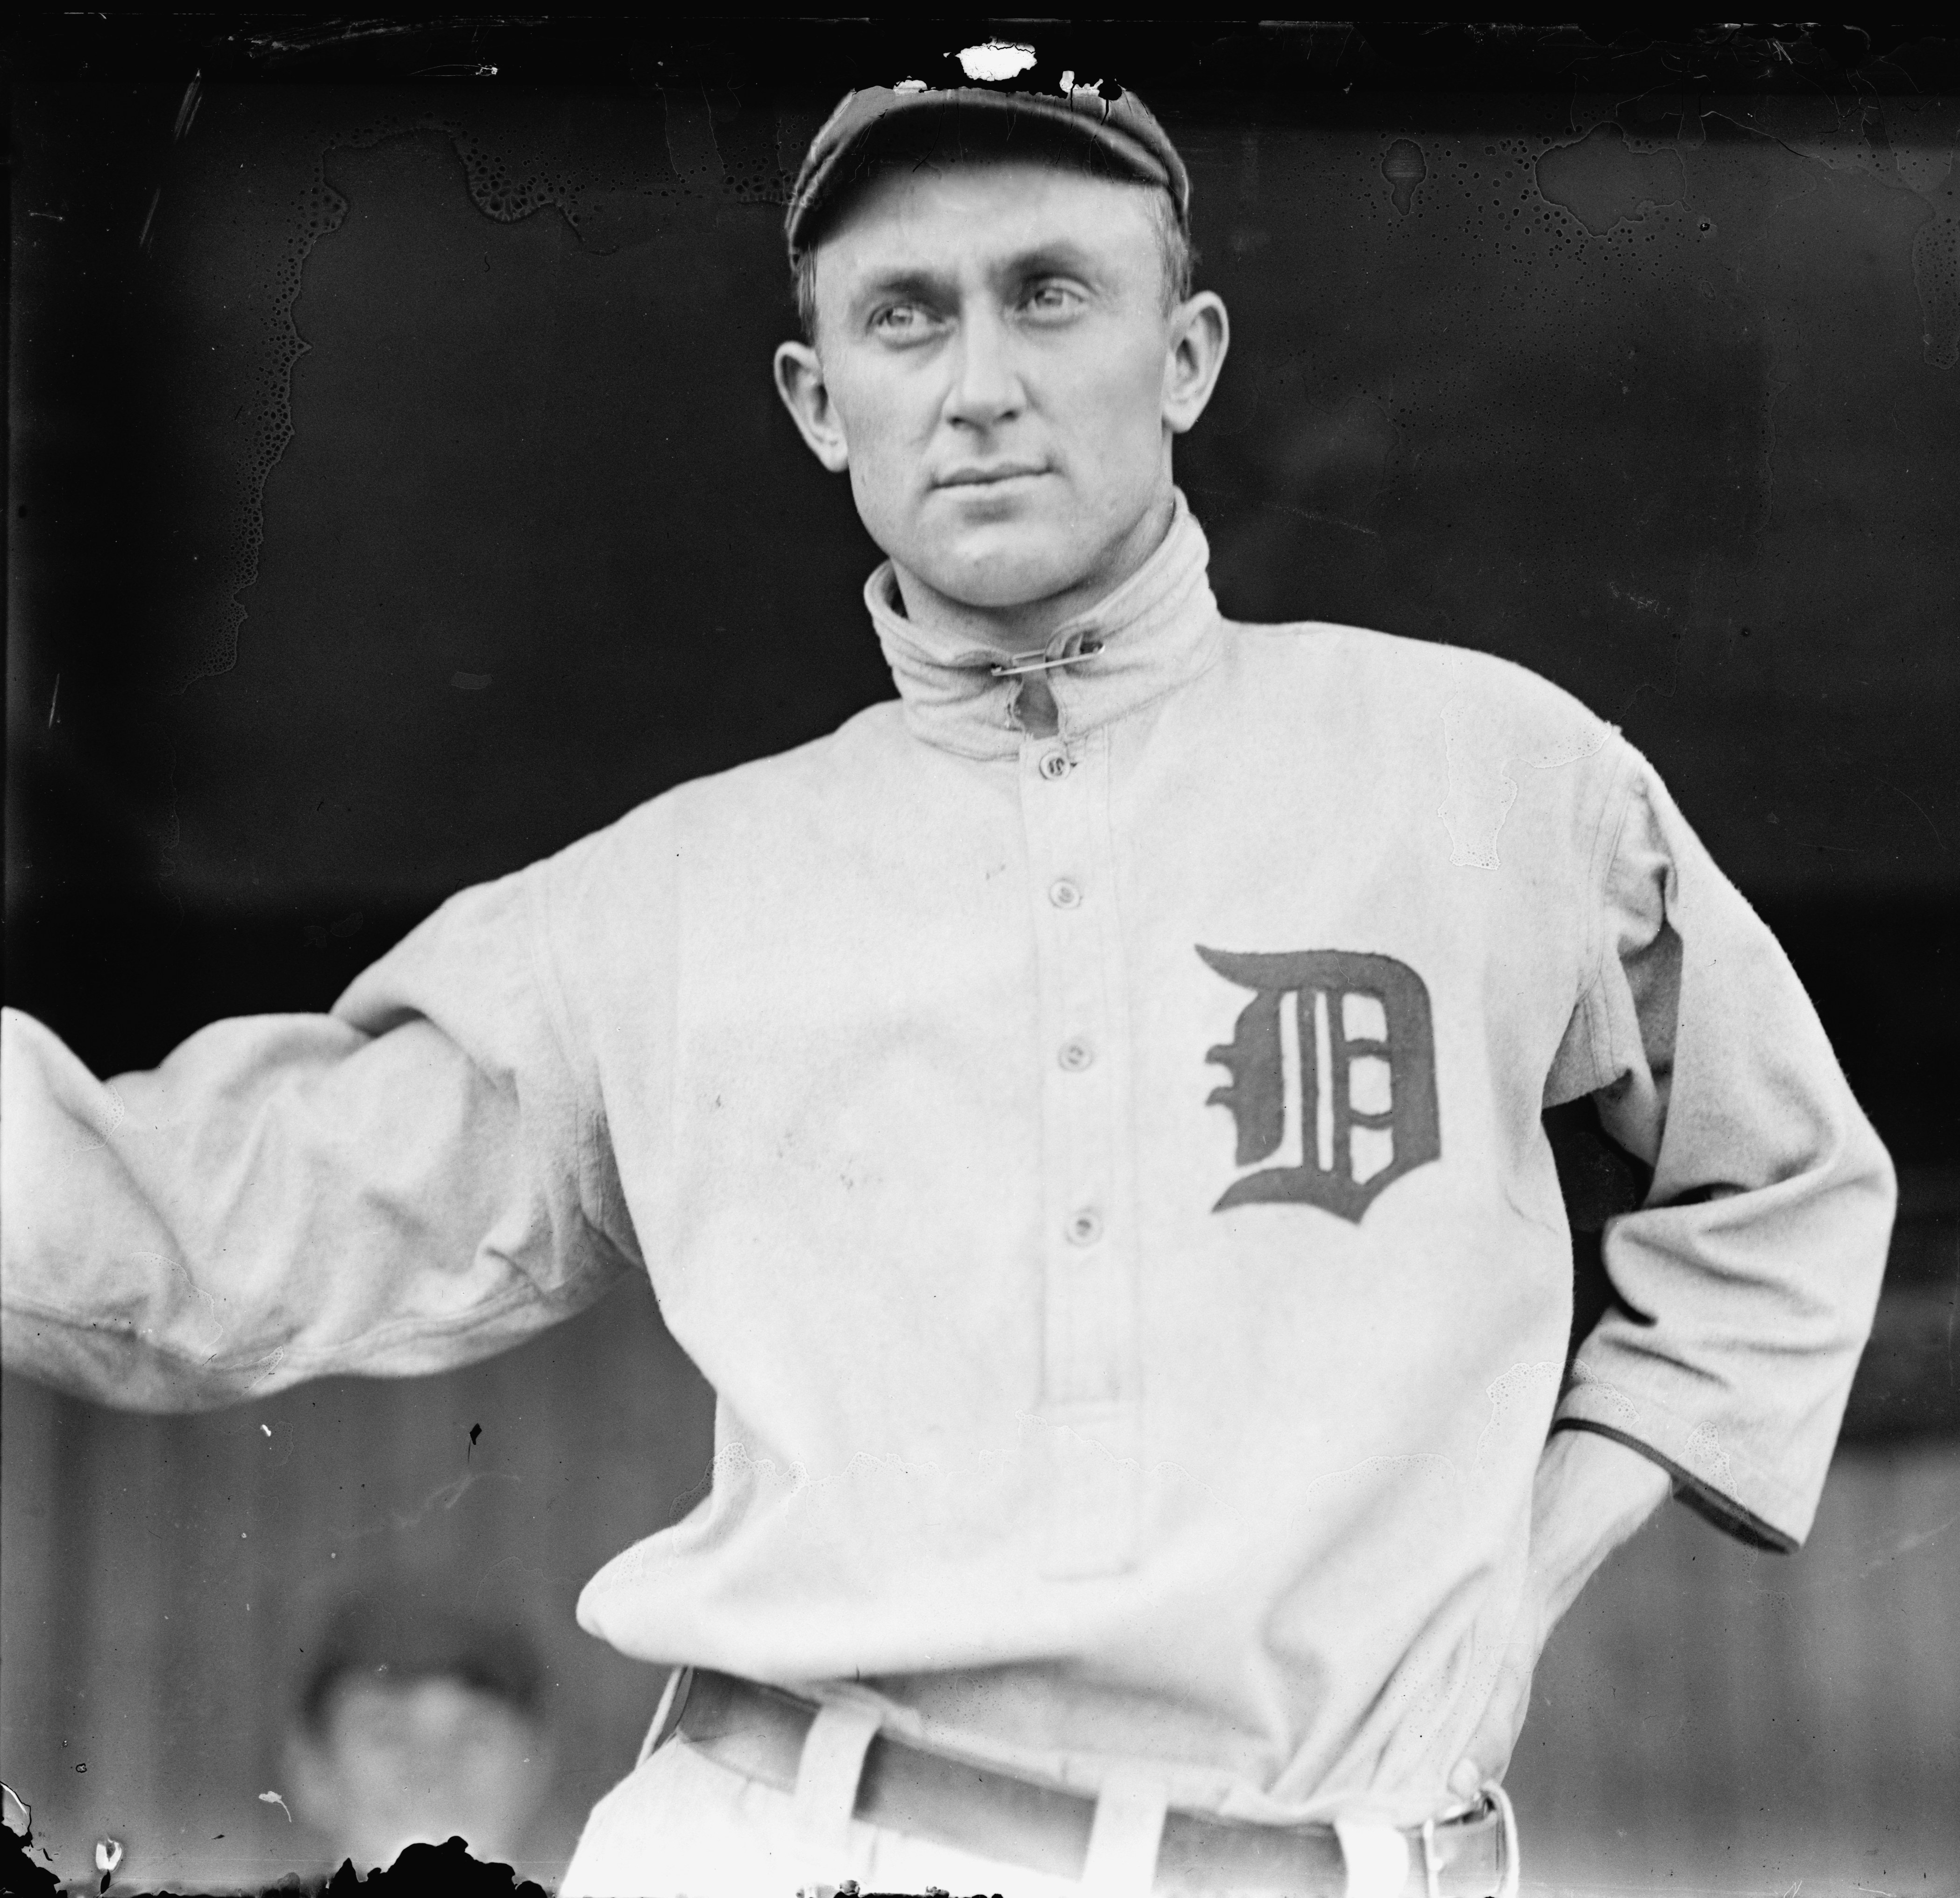 ty cobb and baseball In 2013, cobb's grandson, herschel cobb, published a book about his grandfather titled heart of a tiger, growing up with my grandfather, ty cobb in this book, herschel cobb provides an inside view of his grandfather's kindness and generosity.